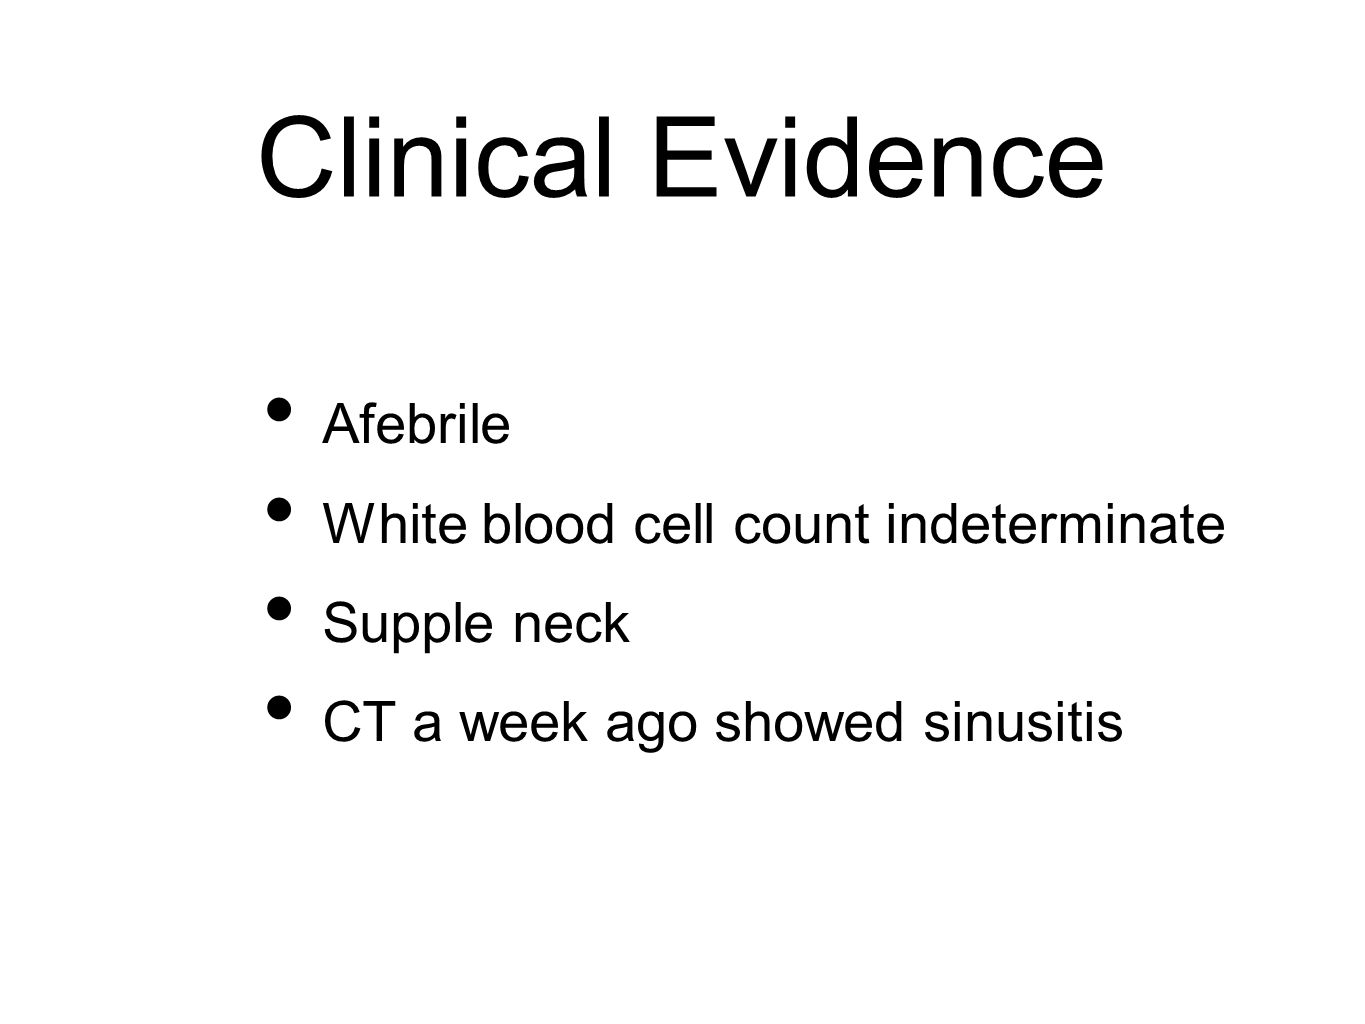 Clinical Evidence Afebrile White blood cell count indeterminate Supple neck CT a week ago showed sinusitis